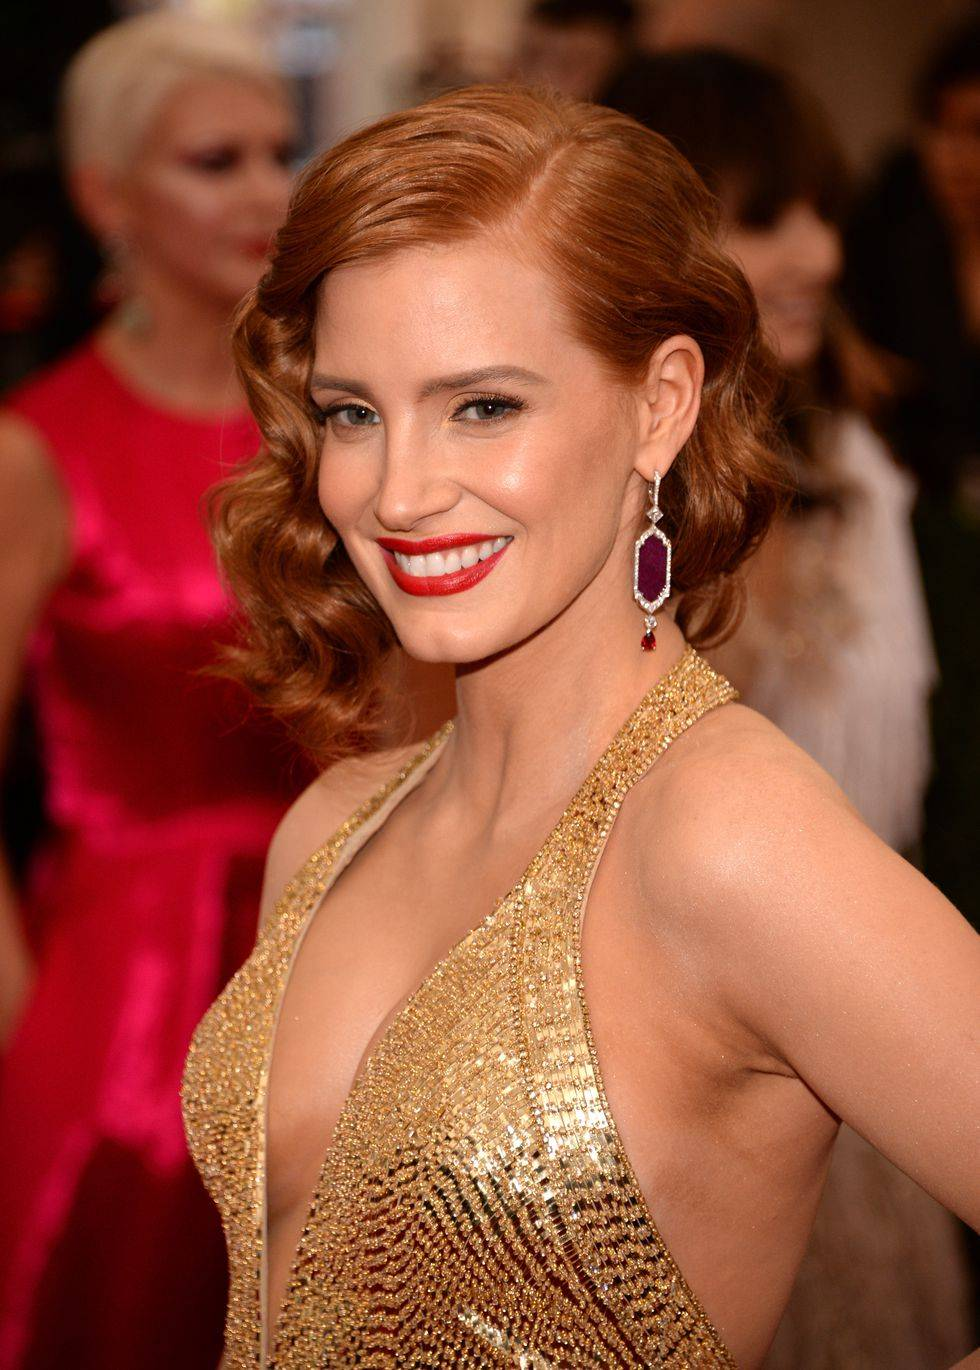 Jessica Chastain with curly hair